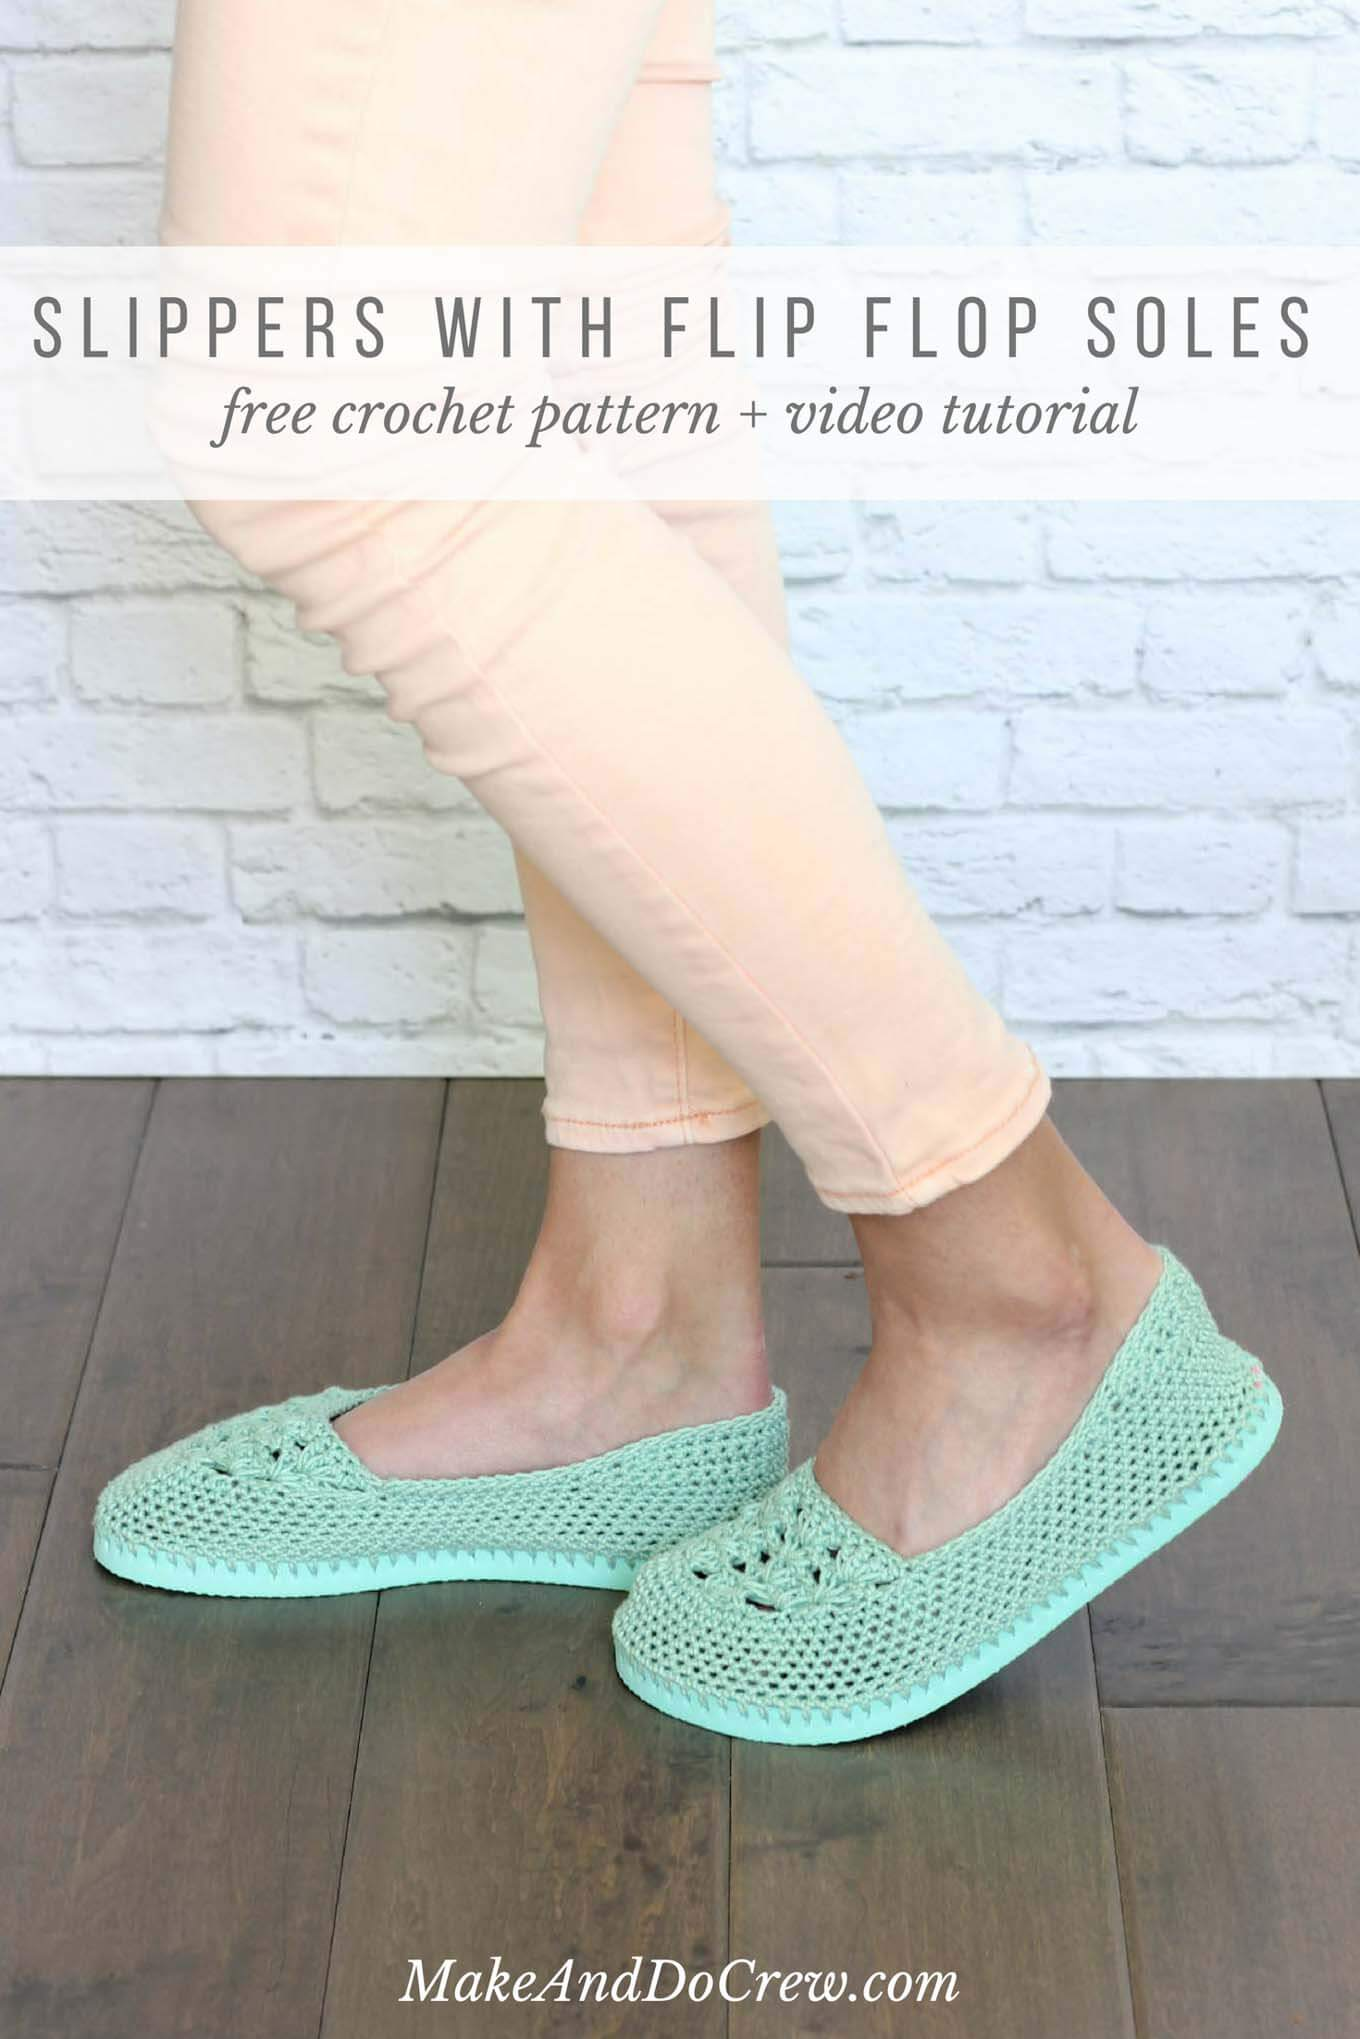 Cotton Yarn And A Rubber Sole Make This Free Crochet Slippers With Flip Flop